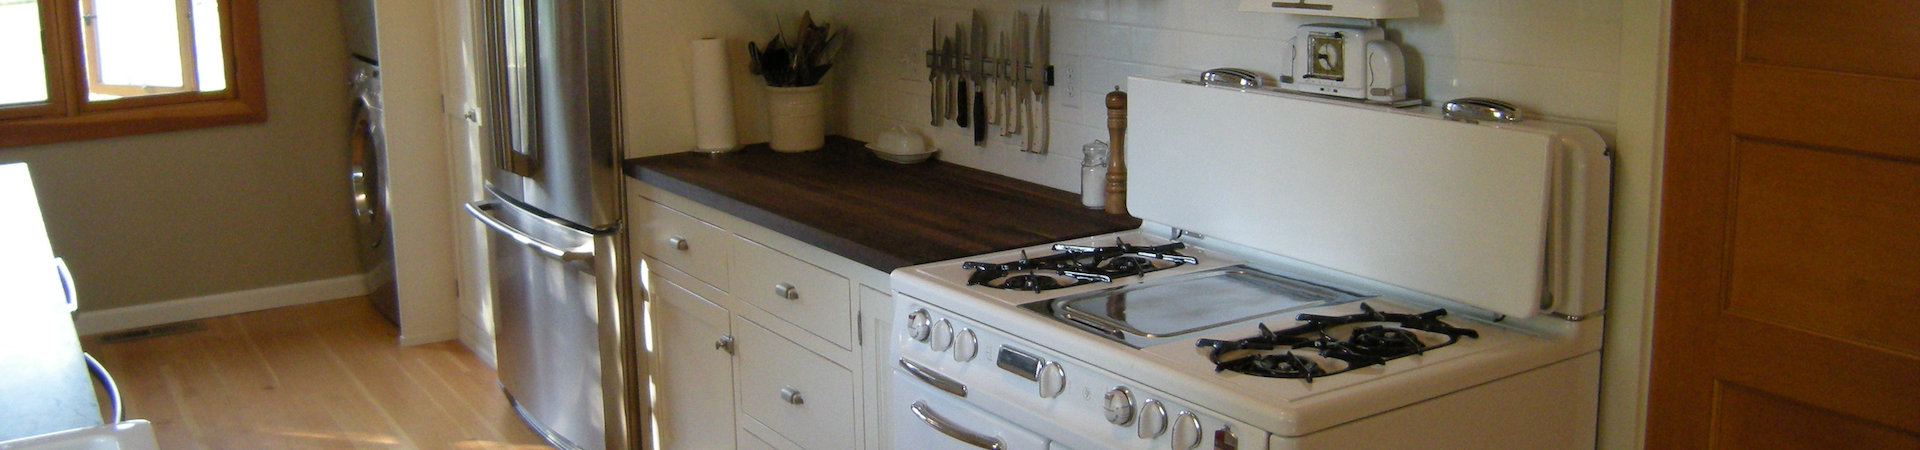 Cabinets Residential Commercial Custom Cabinetry Redding Ca